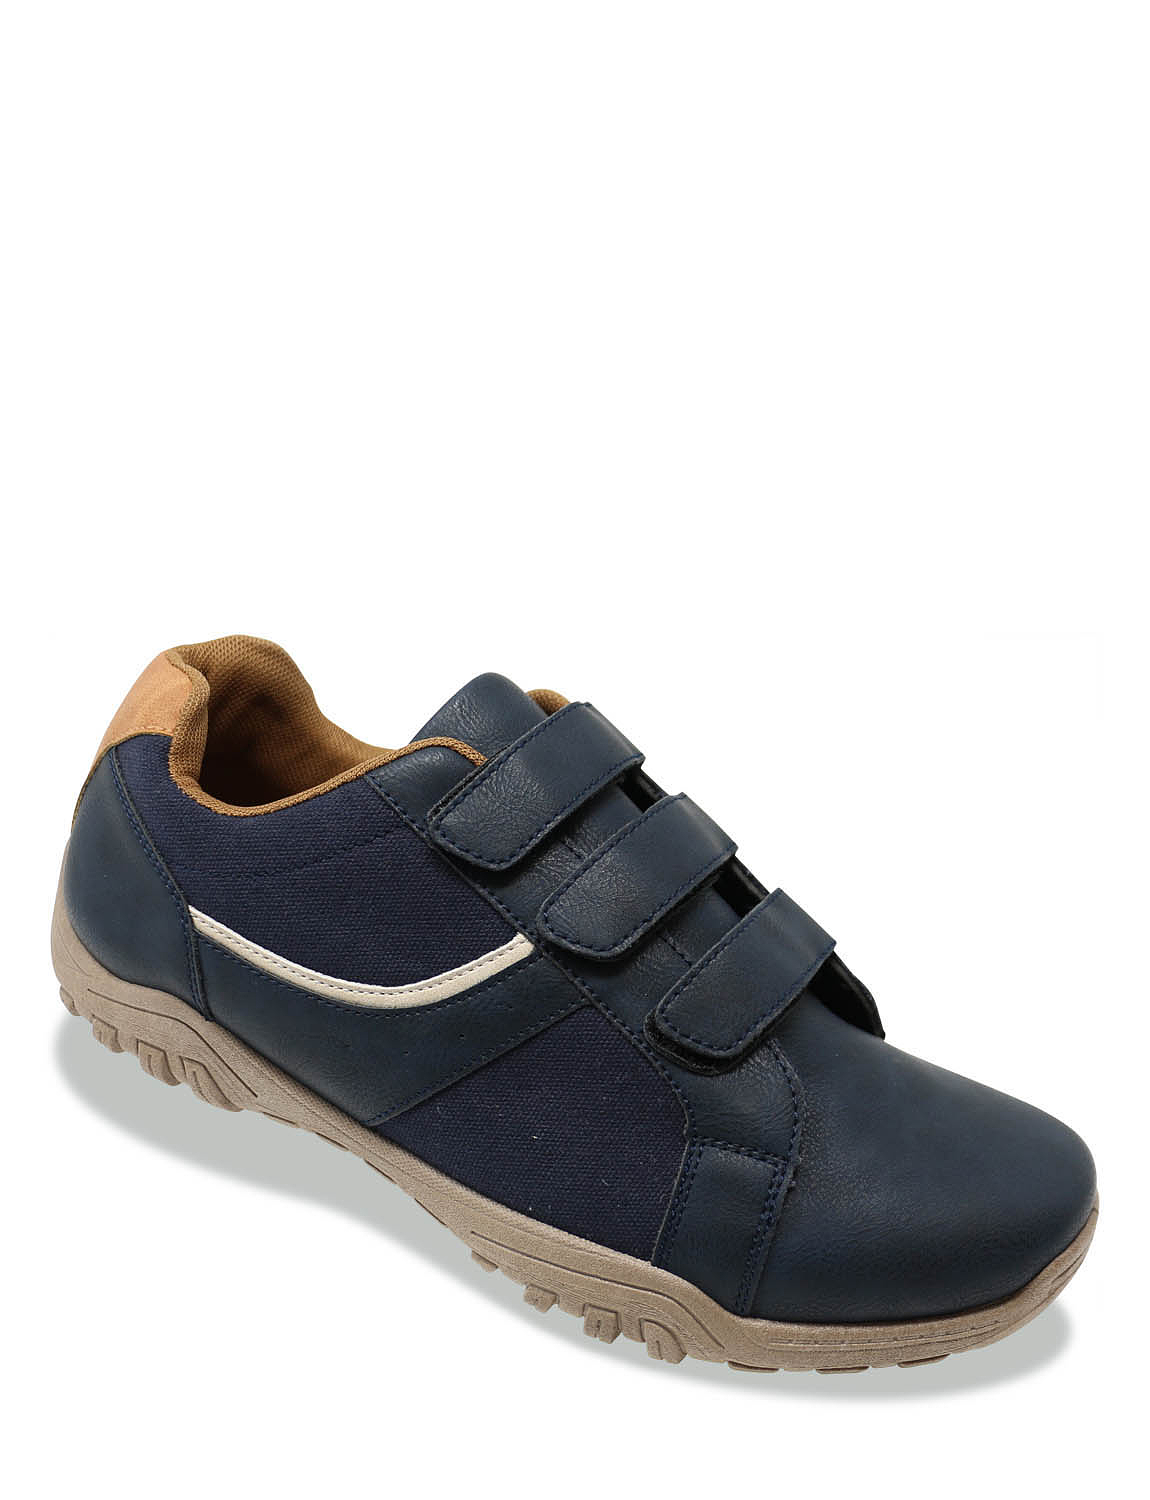 Pegasus Touch Fasten Wide Fit Trainer - Navy